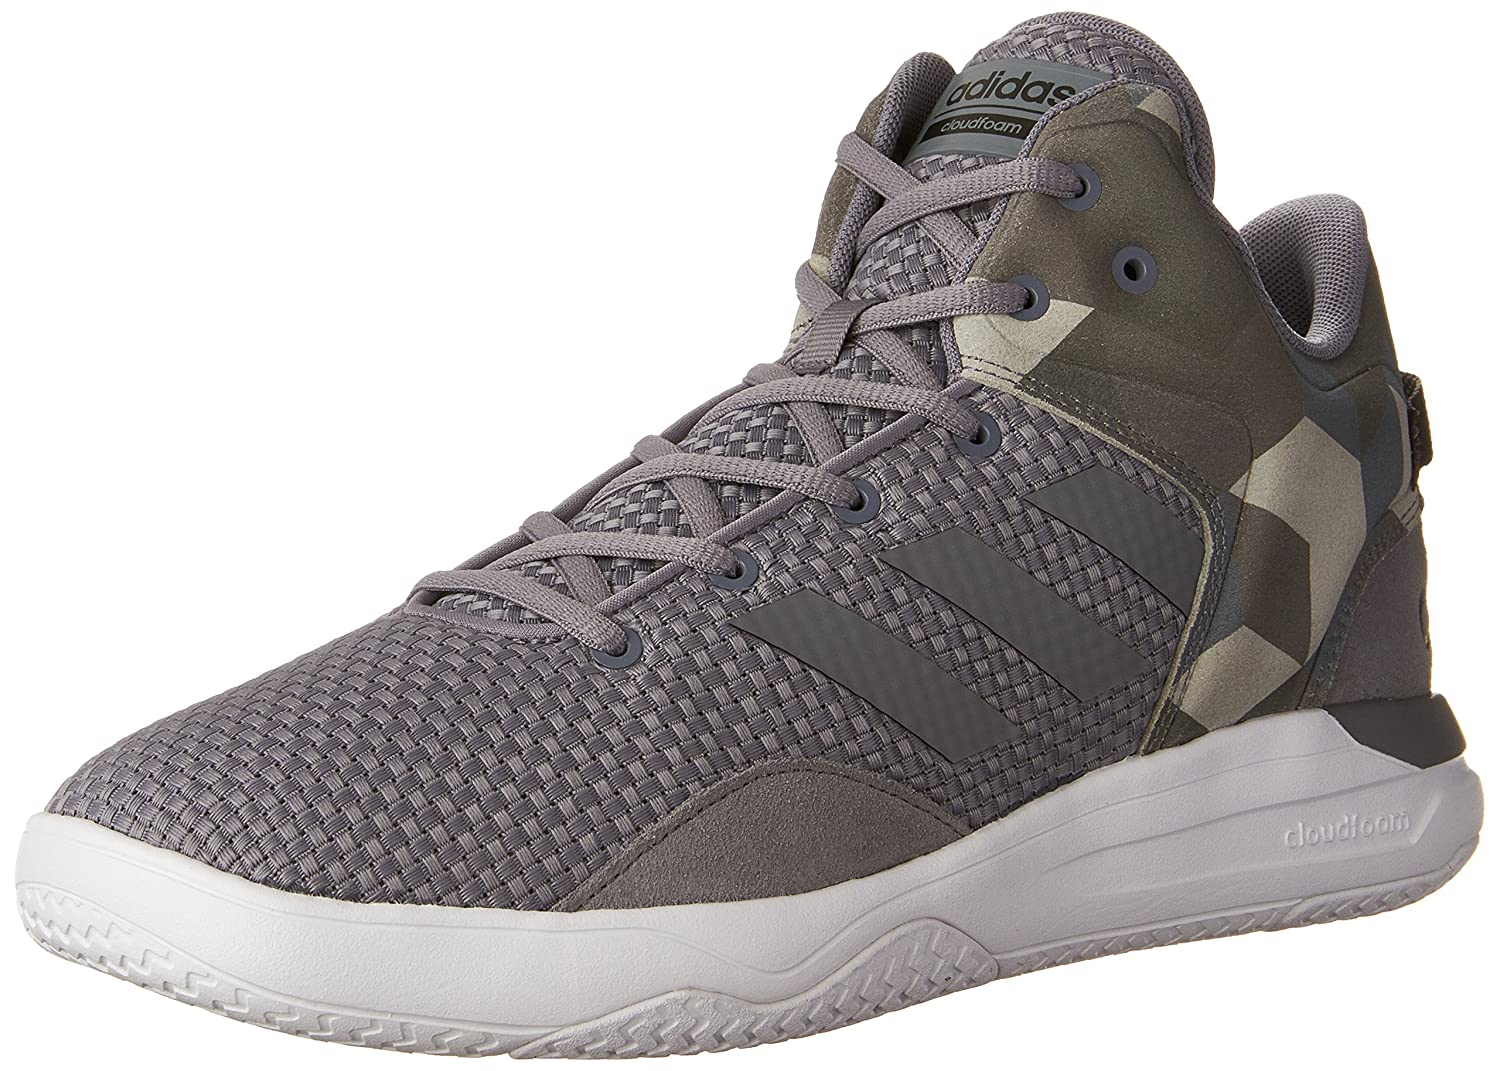 d06eebf7a Adidas Neo Mens Cloudfoam Revival Mid Basketball Shoes Grey Tech Grey Black  credibility first